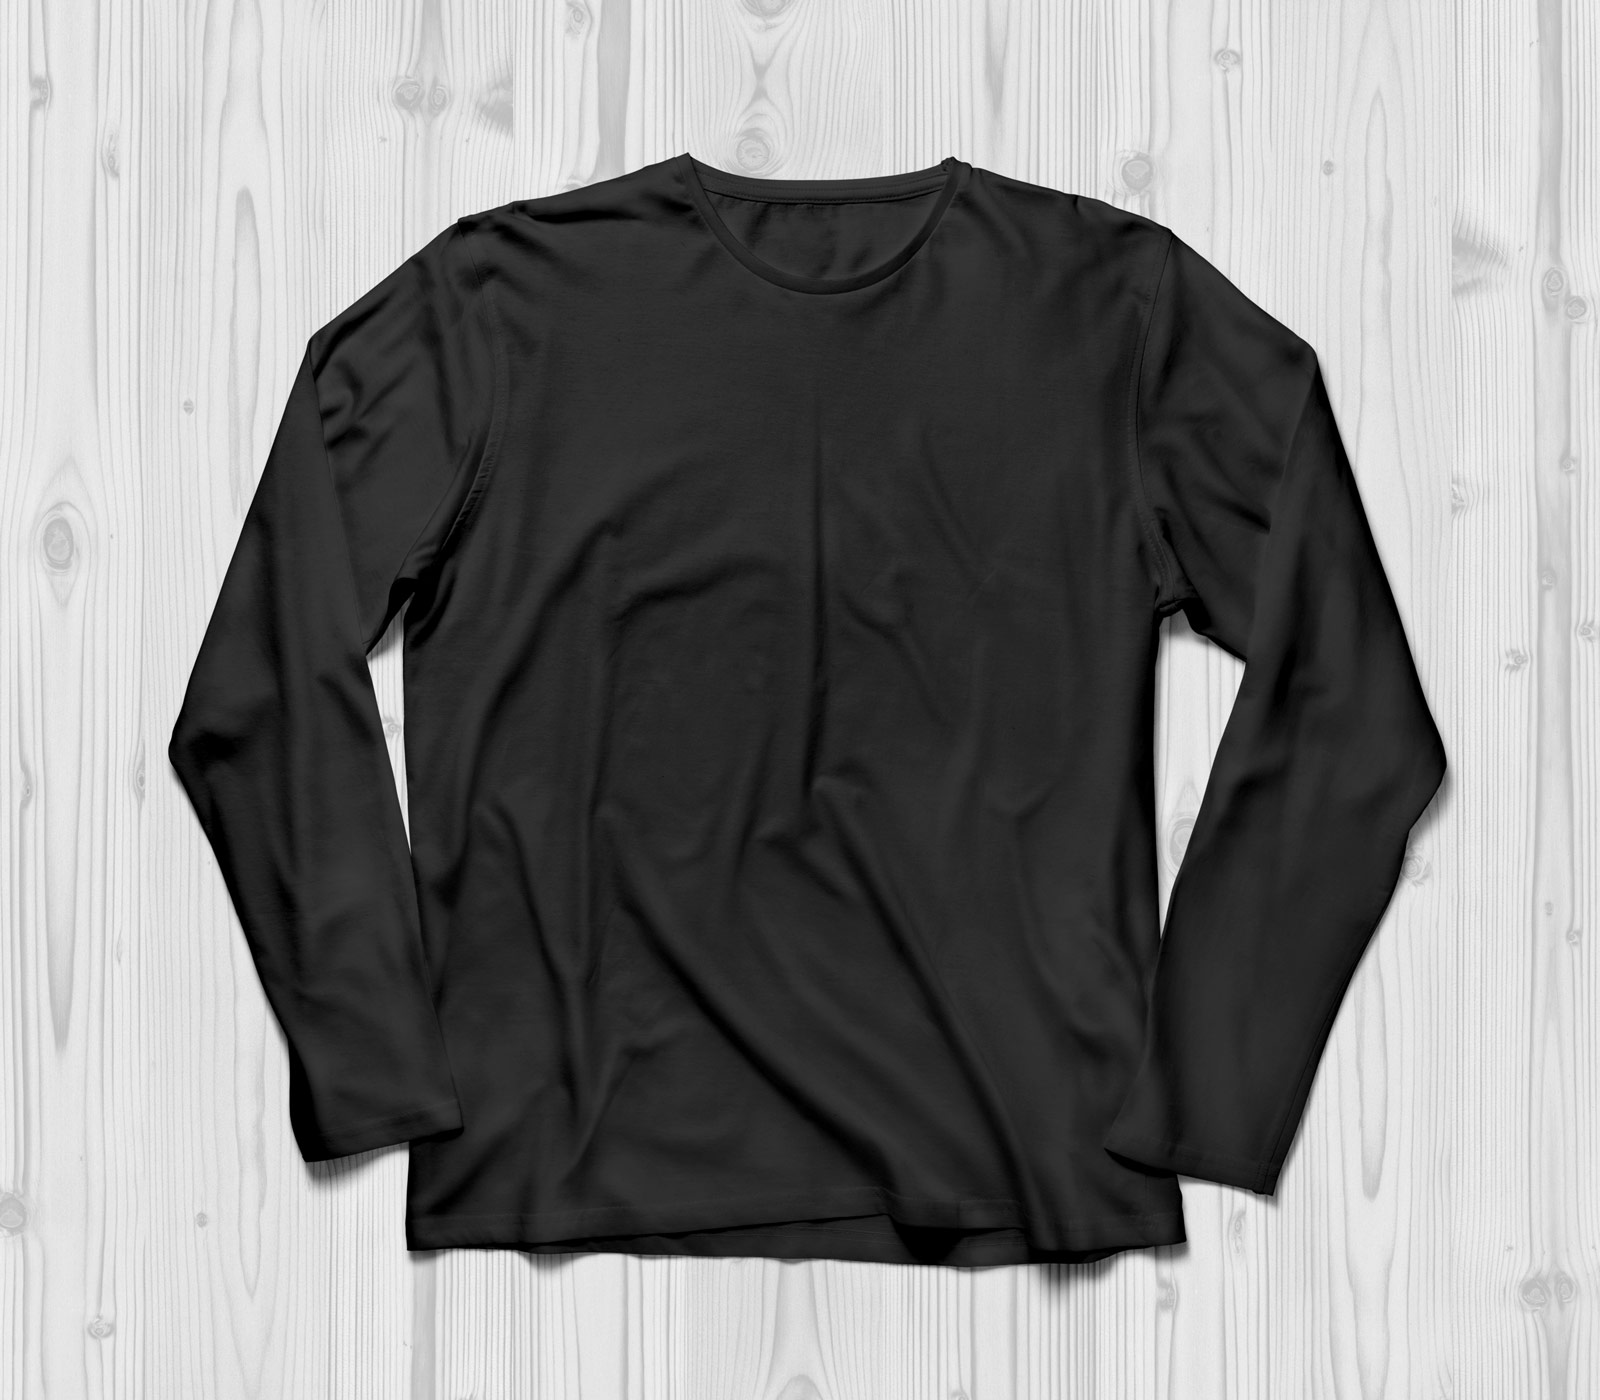 Black t shirt mock up -  Black T Shirt